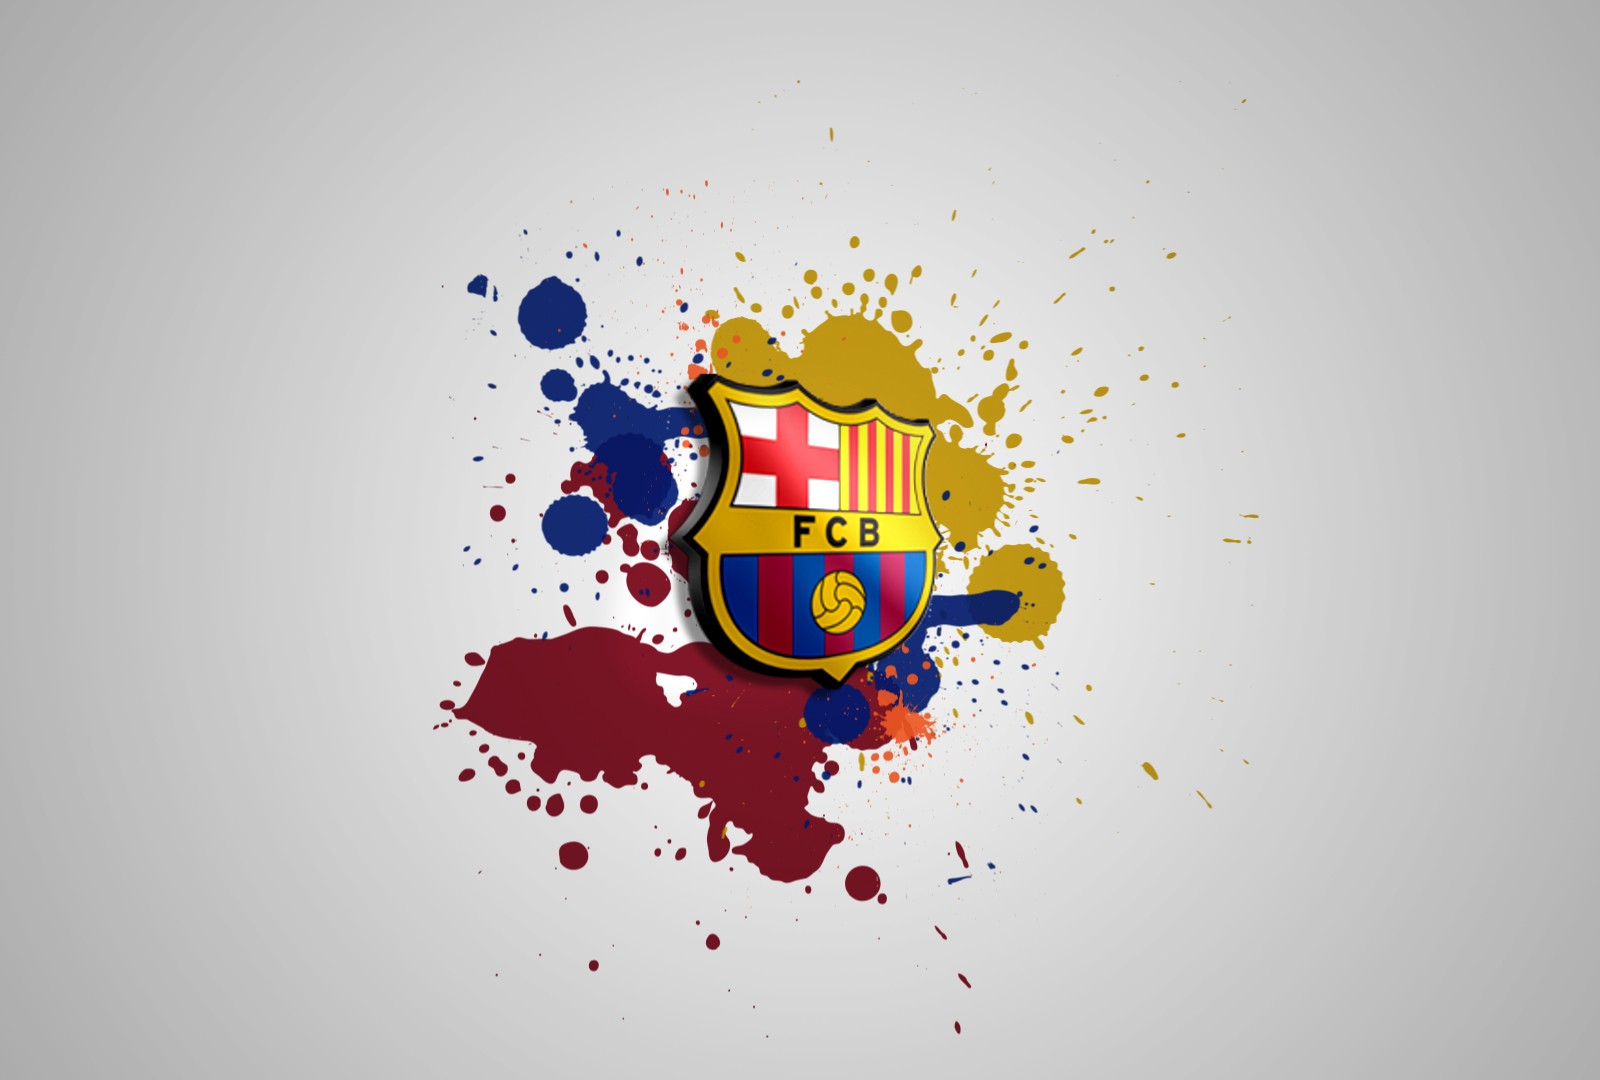 Fc Barcelona Live Wallpaper 3d Download Sports Logo Wallpaper Gallery